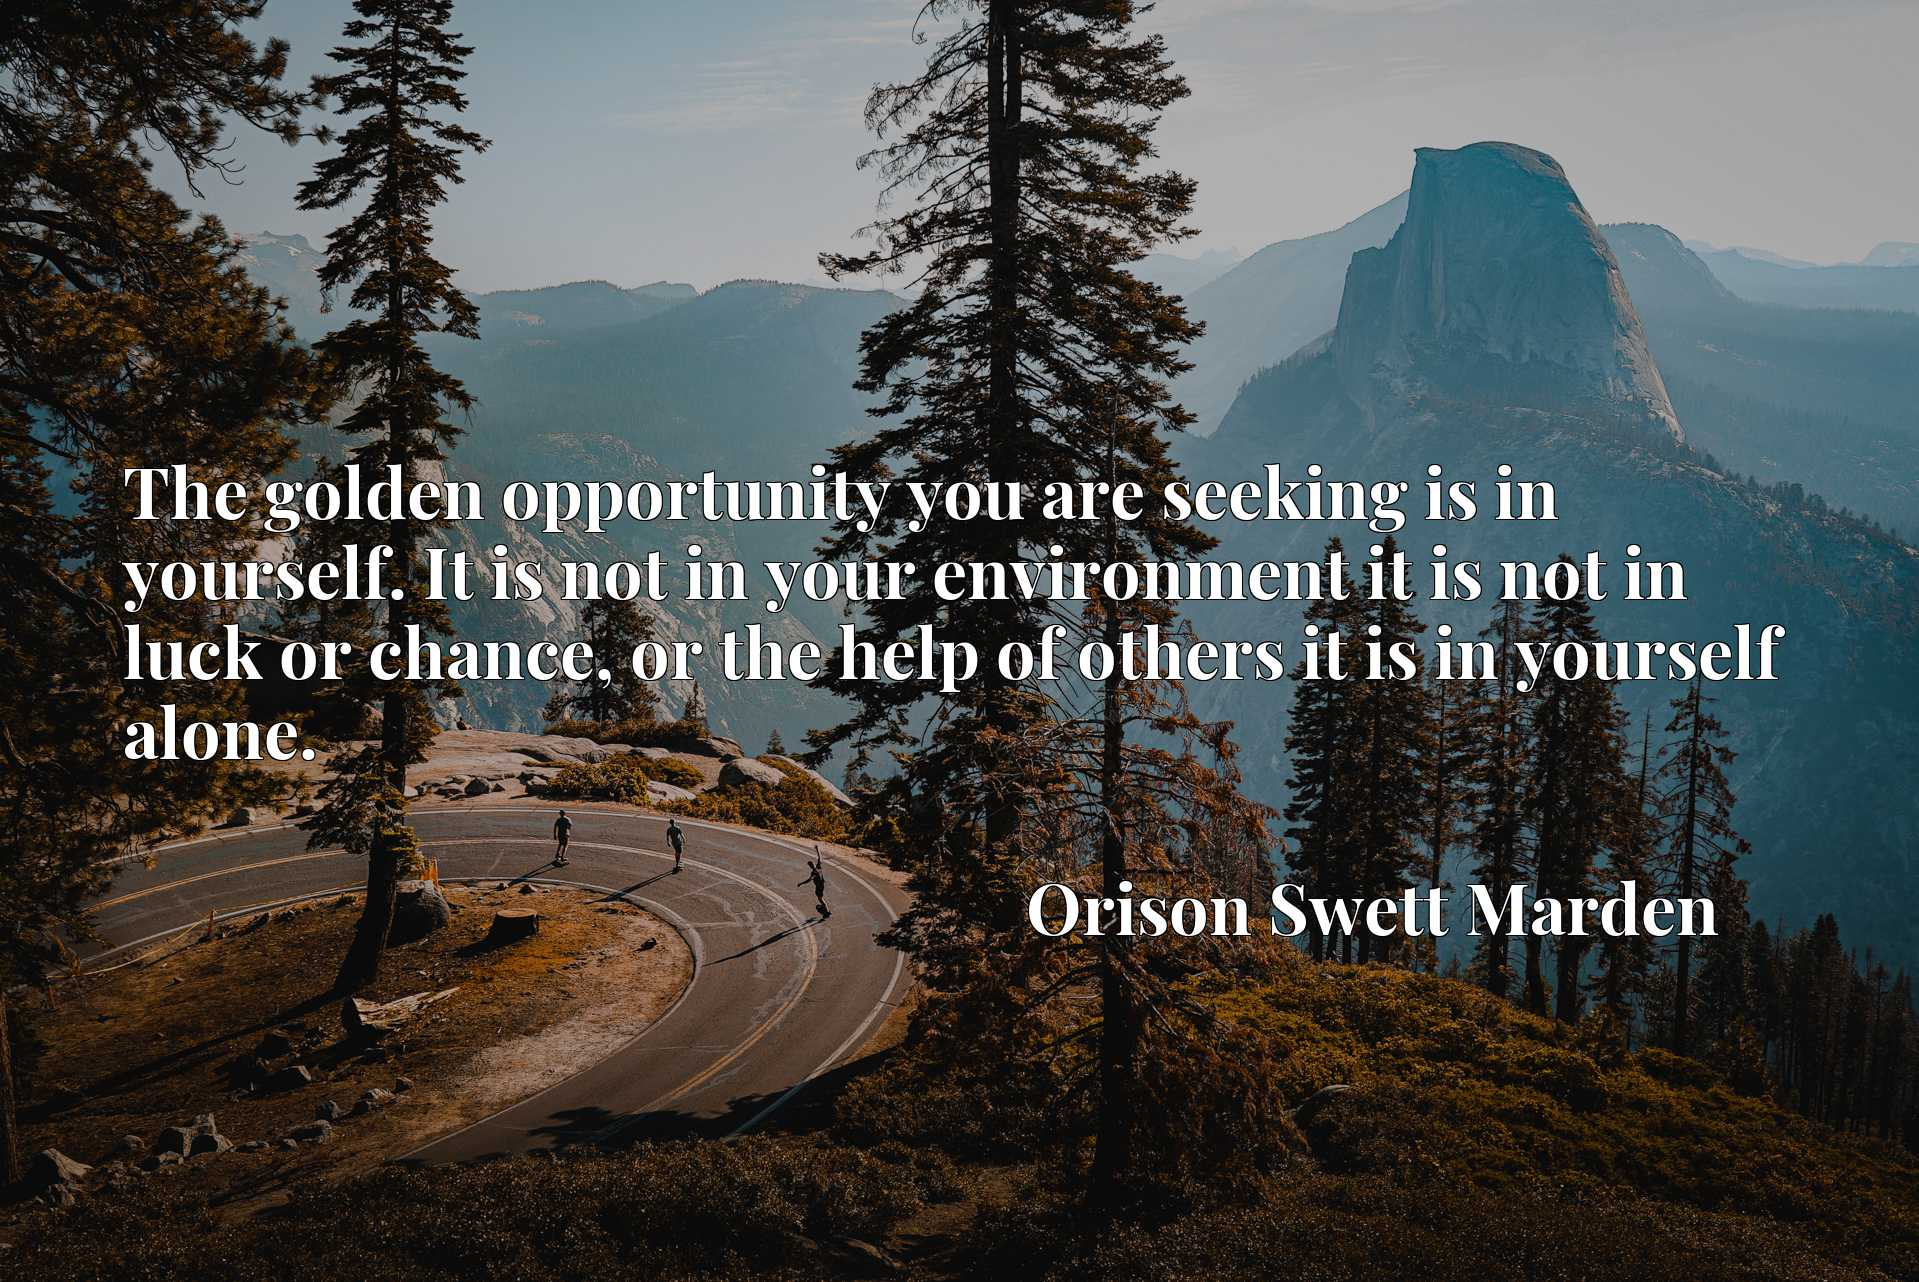 The golden opportunity you are seeking is in yourself. It is not in your environment it is not in luck or chance, or the help of others it is in yourself alone.